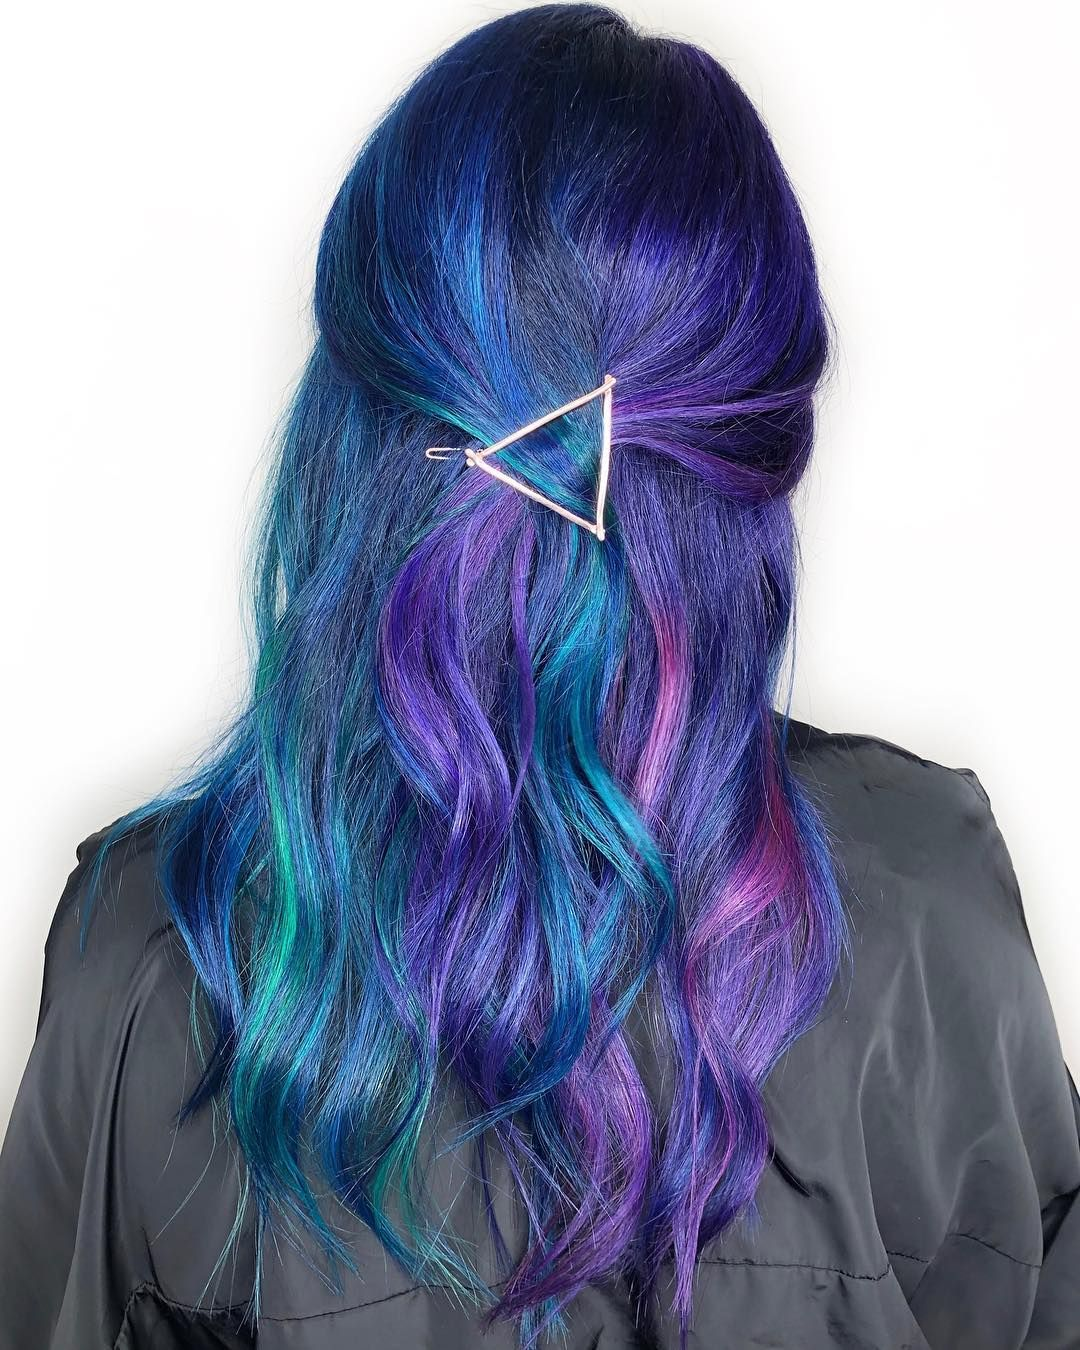 Pin By Mays On Hair Blue And Pink Hair Hair Color Dark Blue Hair Color Pink